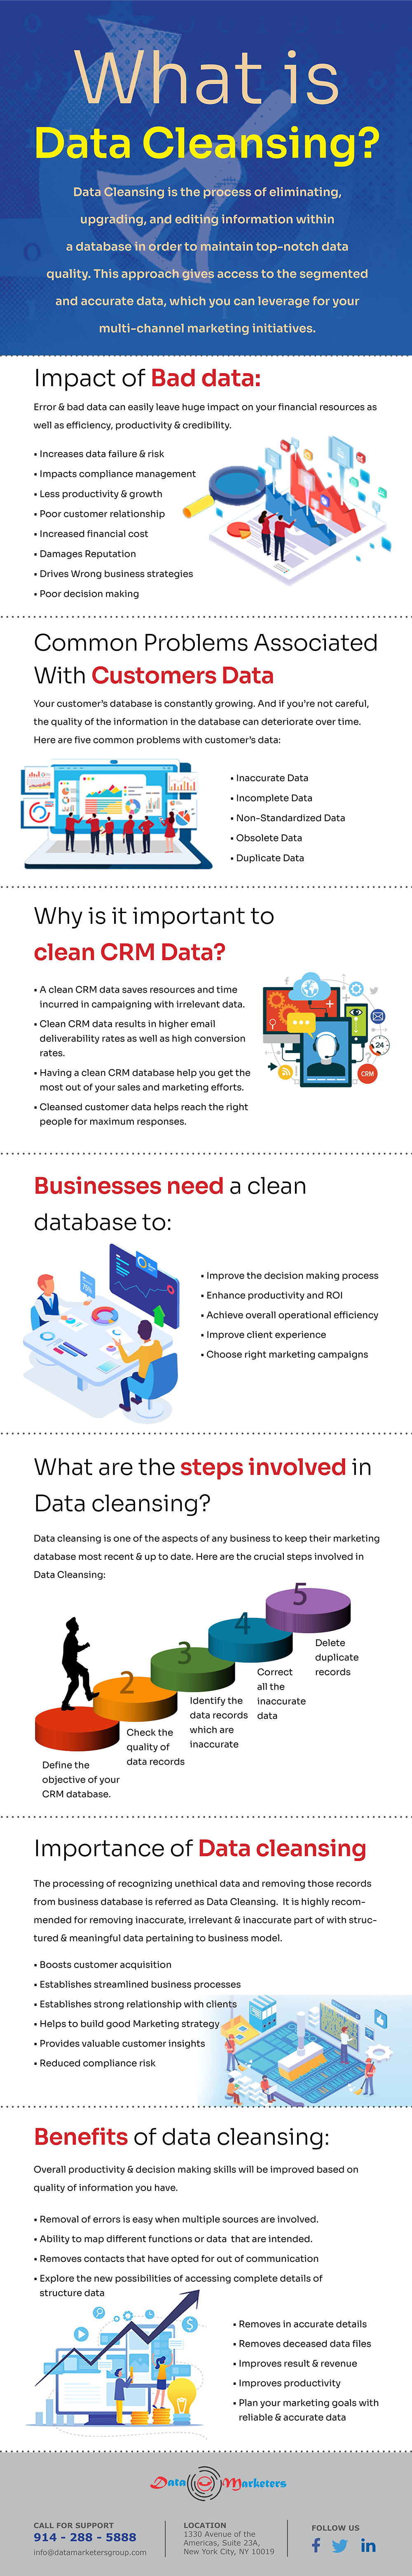 What Is Data Cleansing | Data Marketers Group